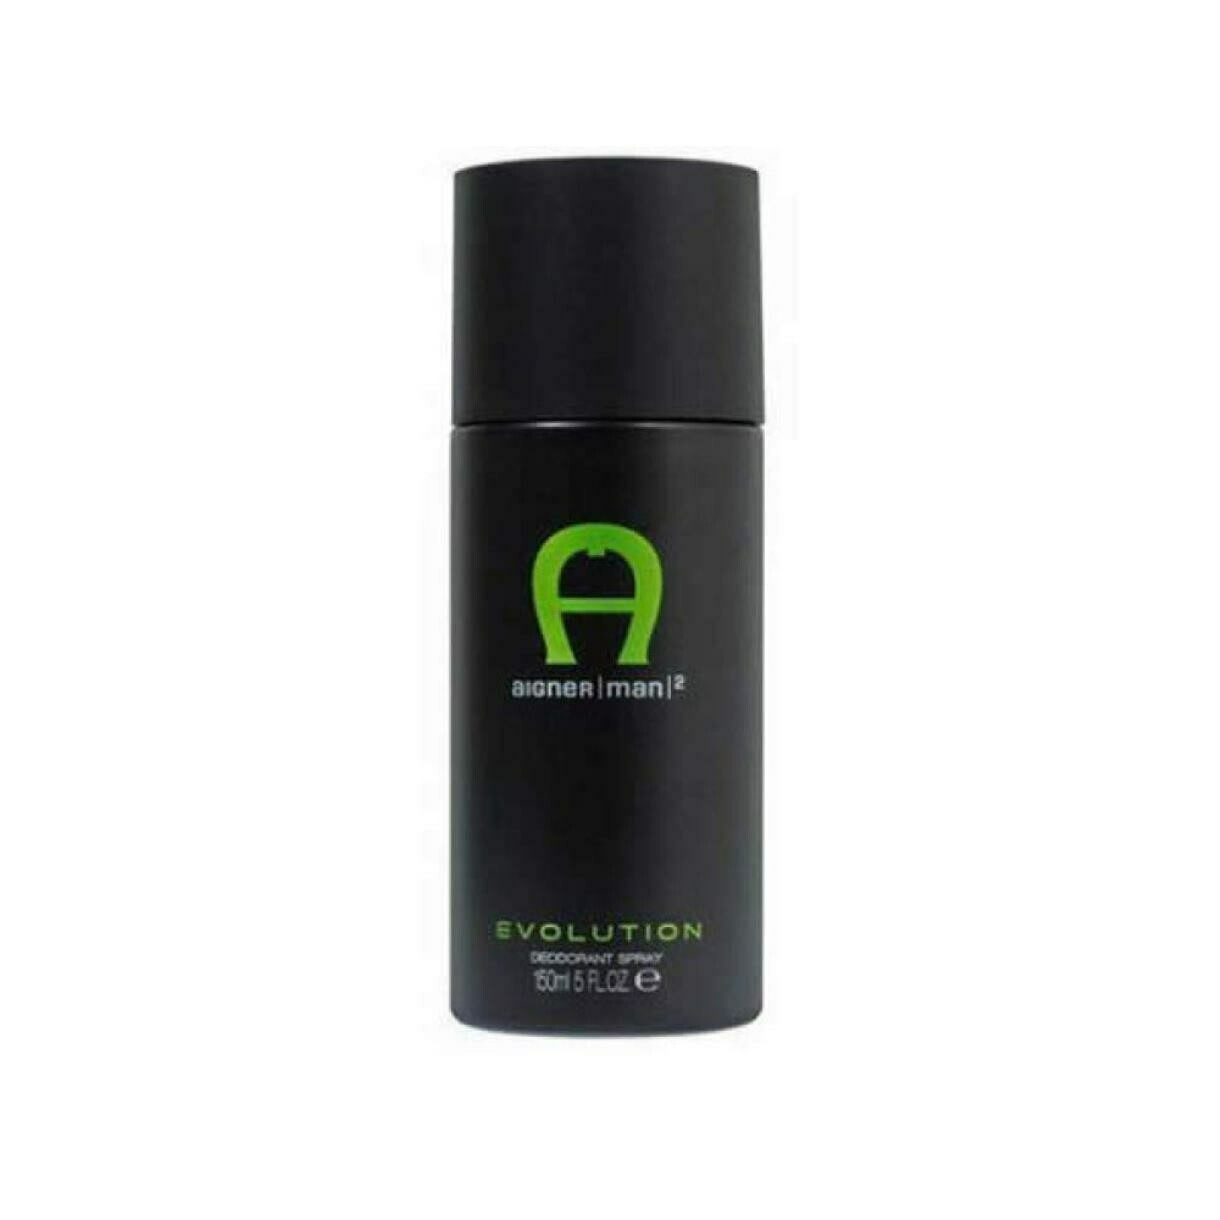 Aigner Man 2 Evolution Deodorant Spray 150ml